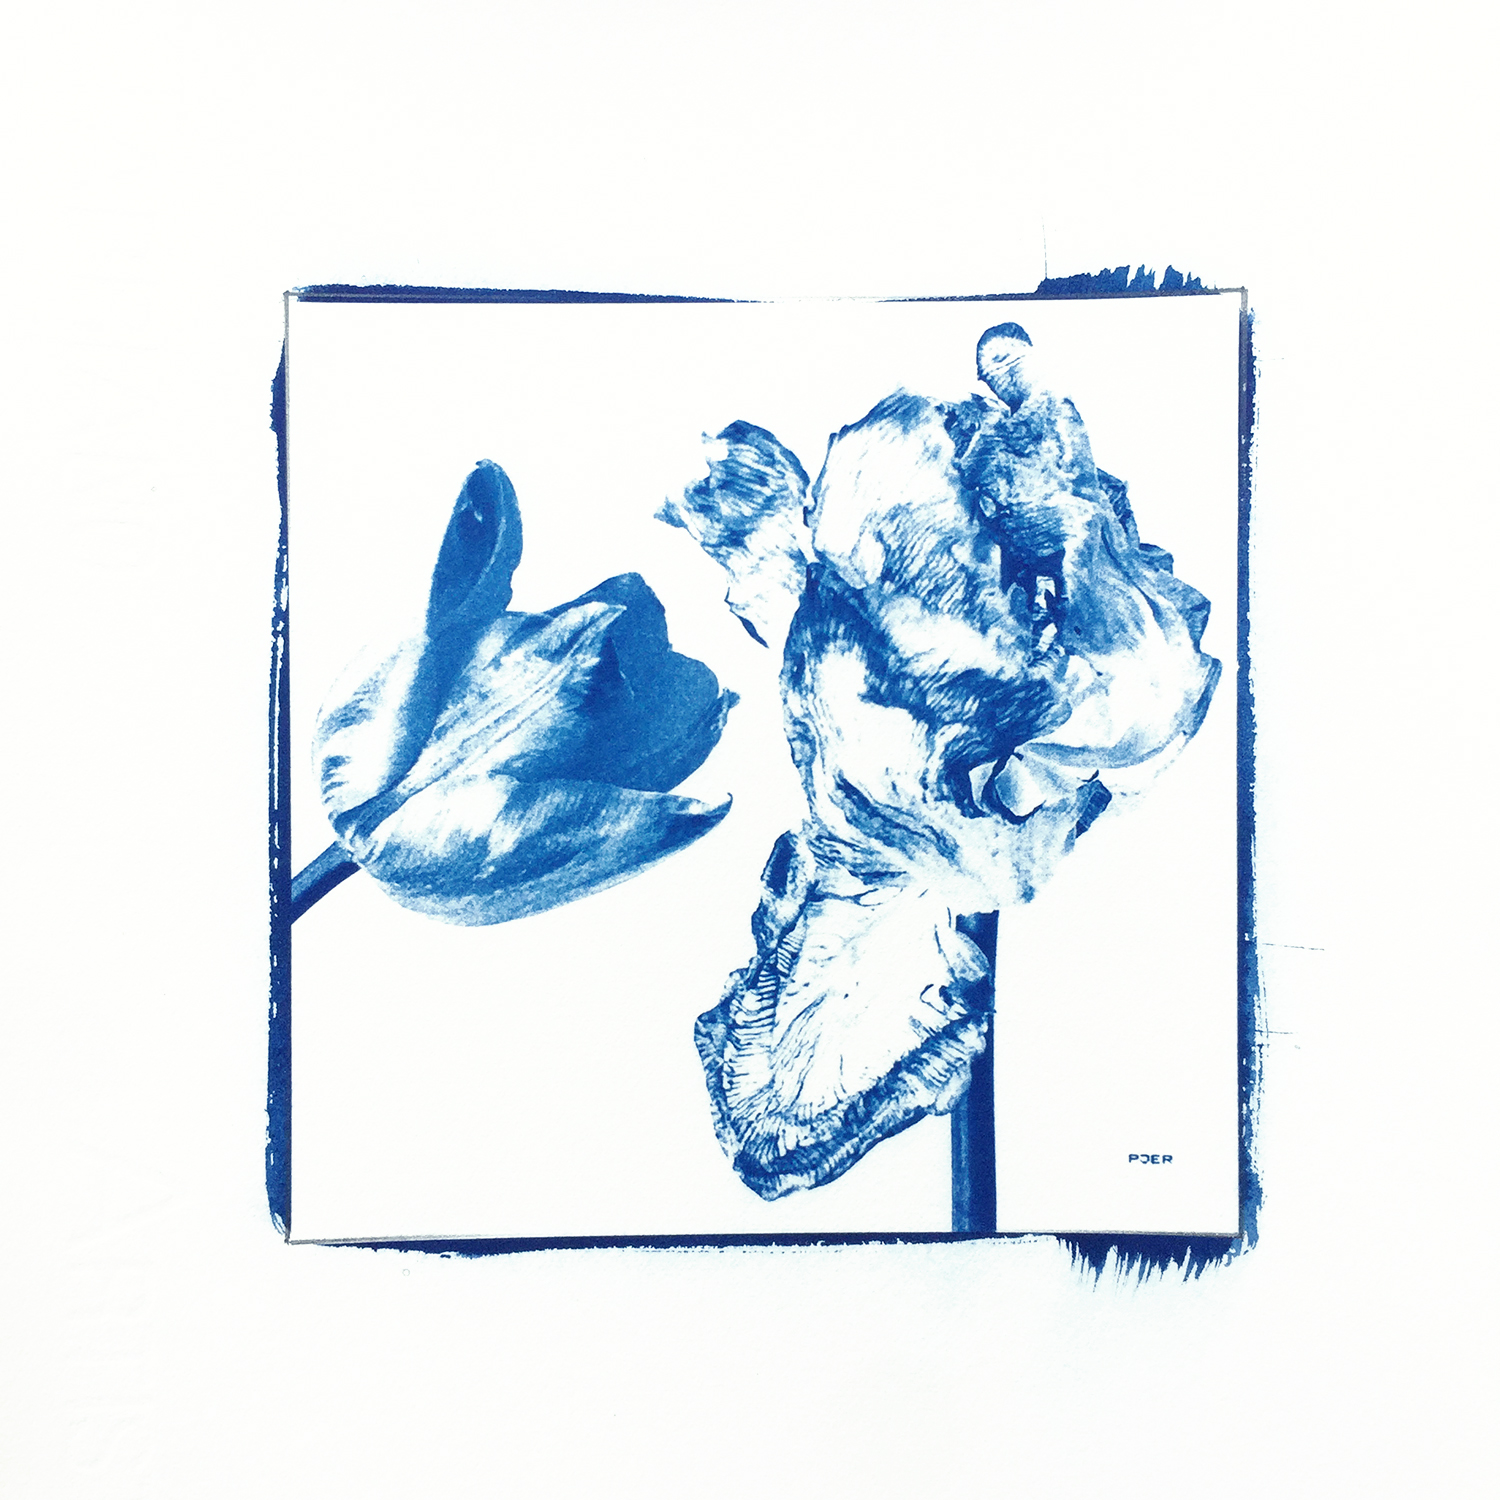 Photo by @pjer1 (cyanotype)